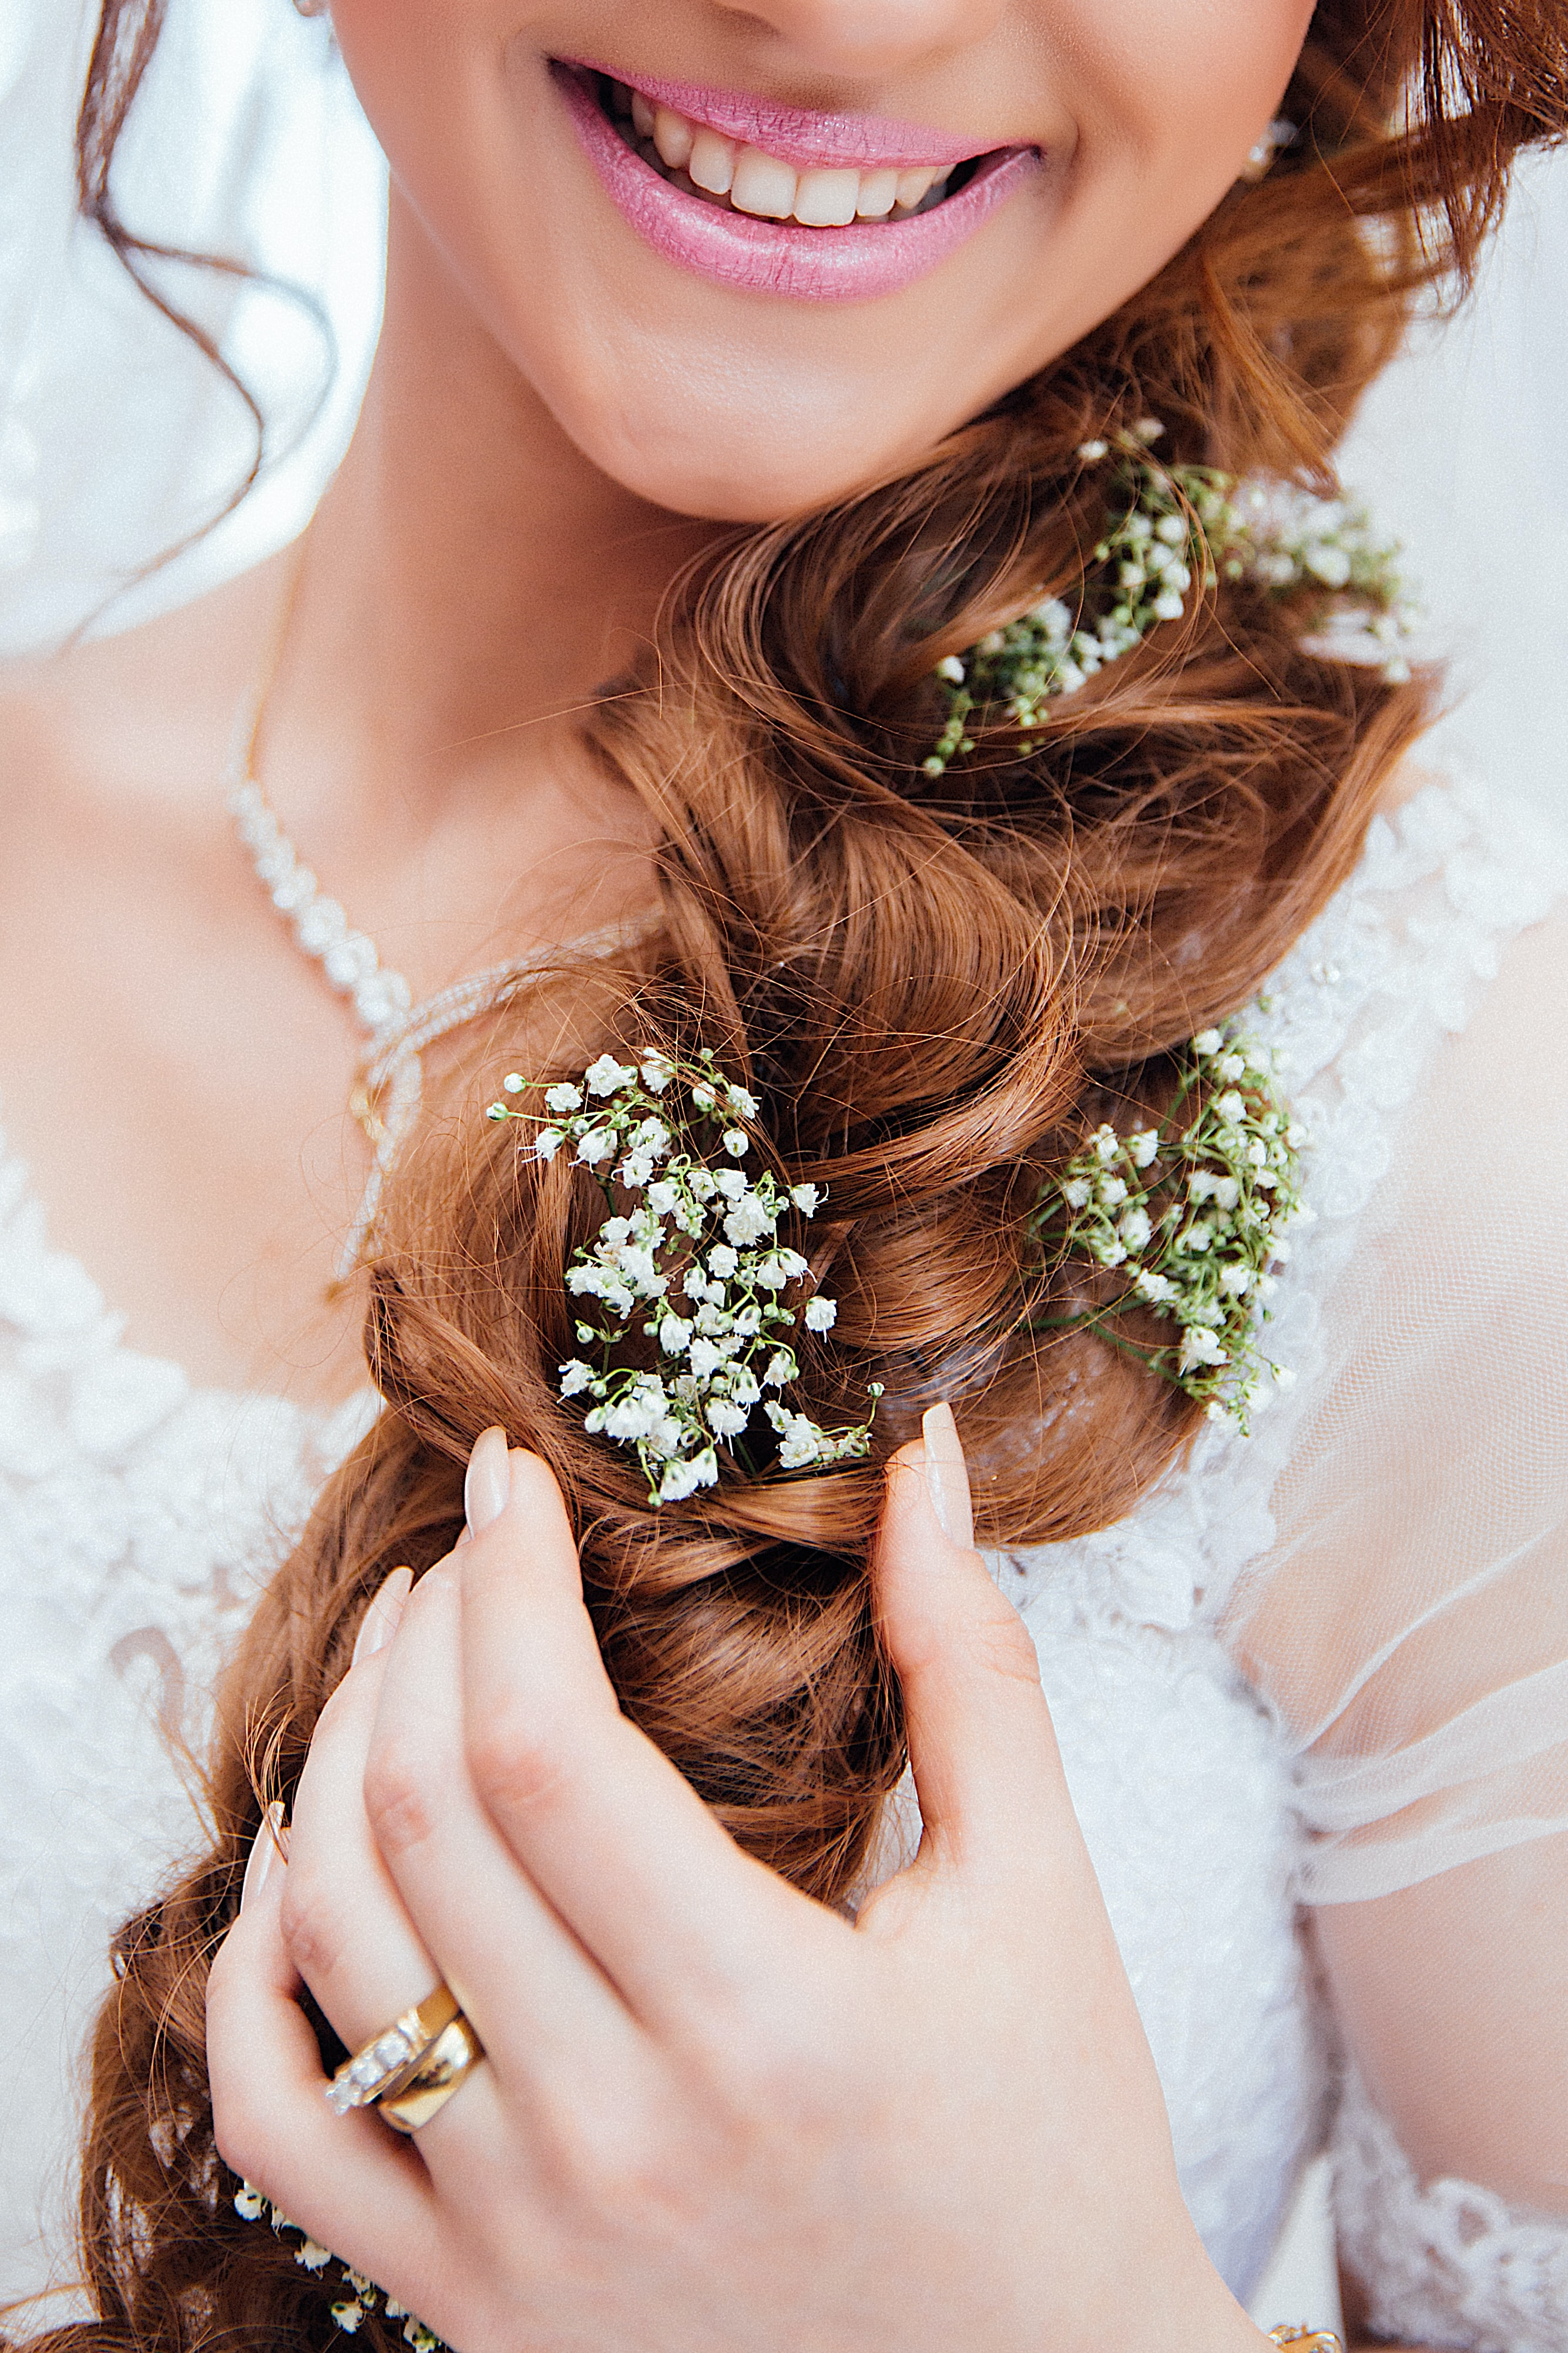 A smiling woman in a bridal dress with tiny white flowers in her plaited hair